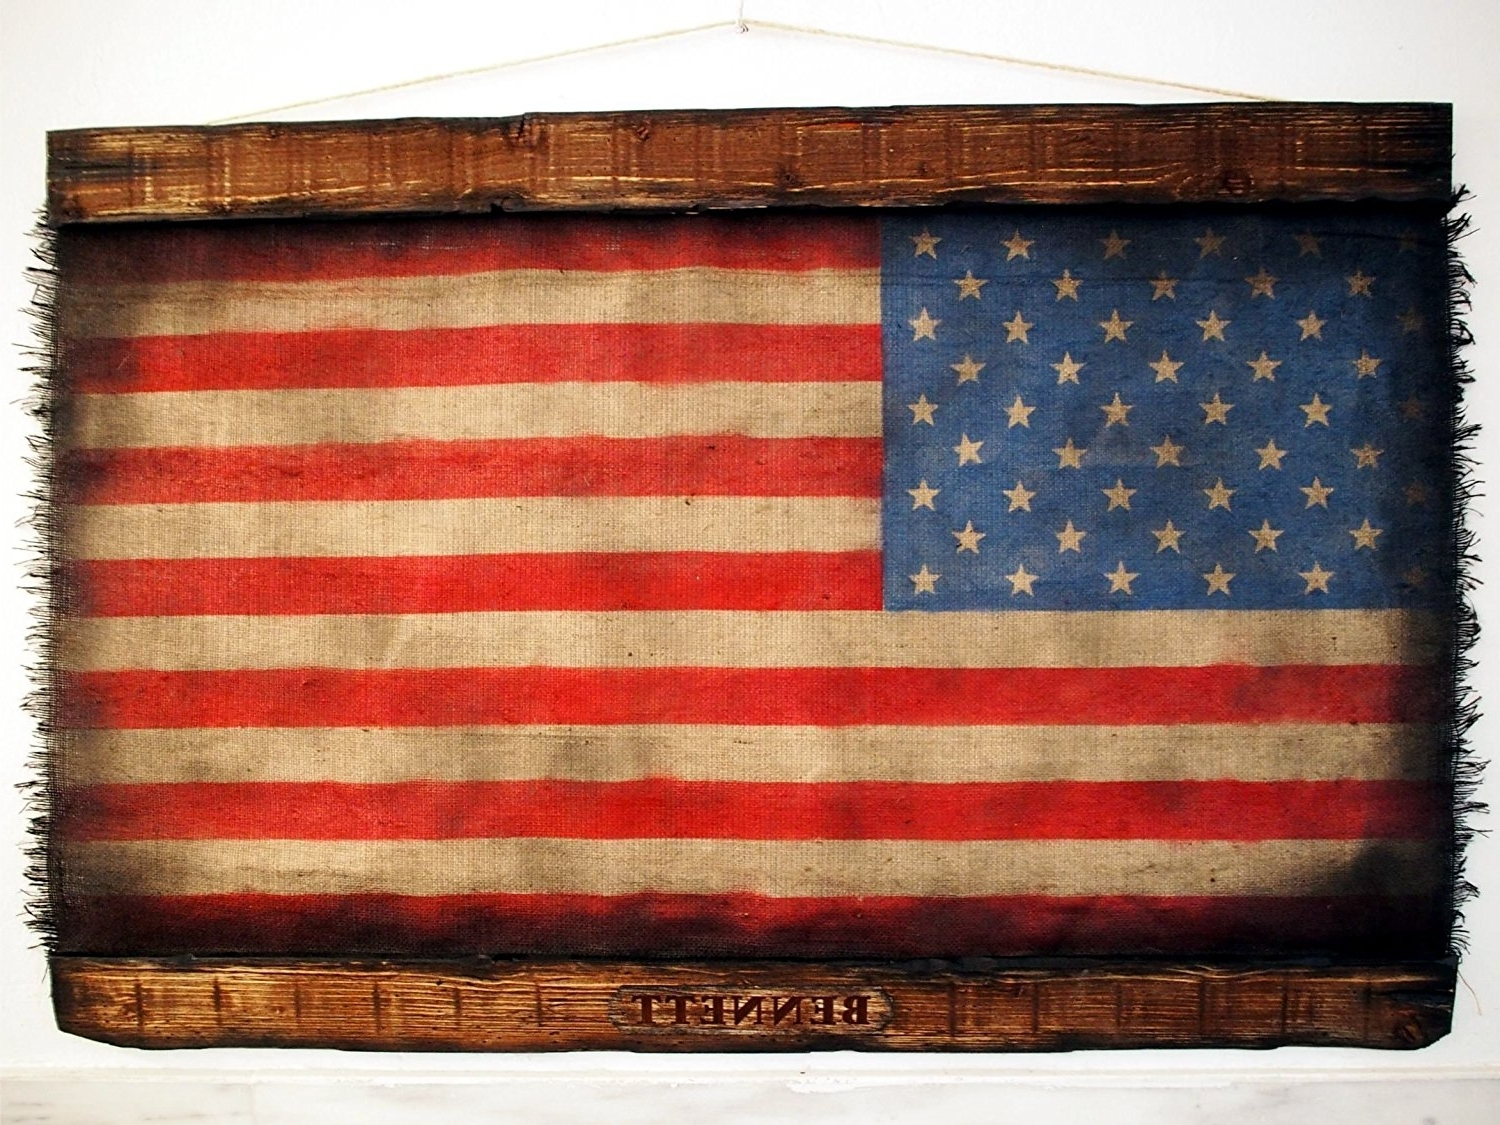 Well Known American Flag Fabric Wall Art Pertaining To Amazon: American Flag Made Of Worn Out Burlap And Wood (View 14 of 15)